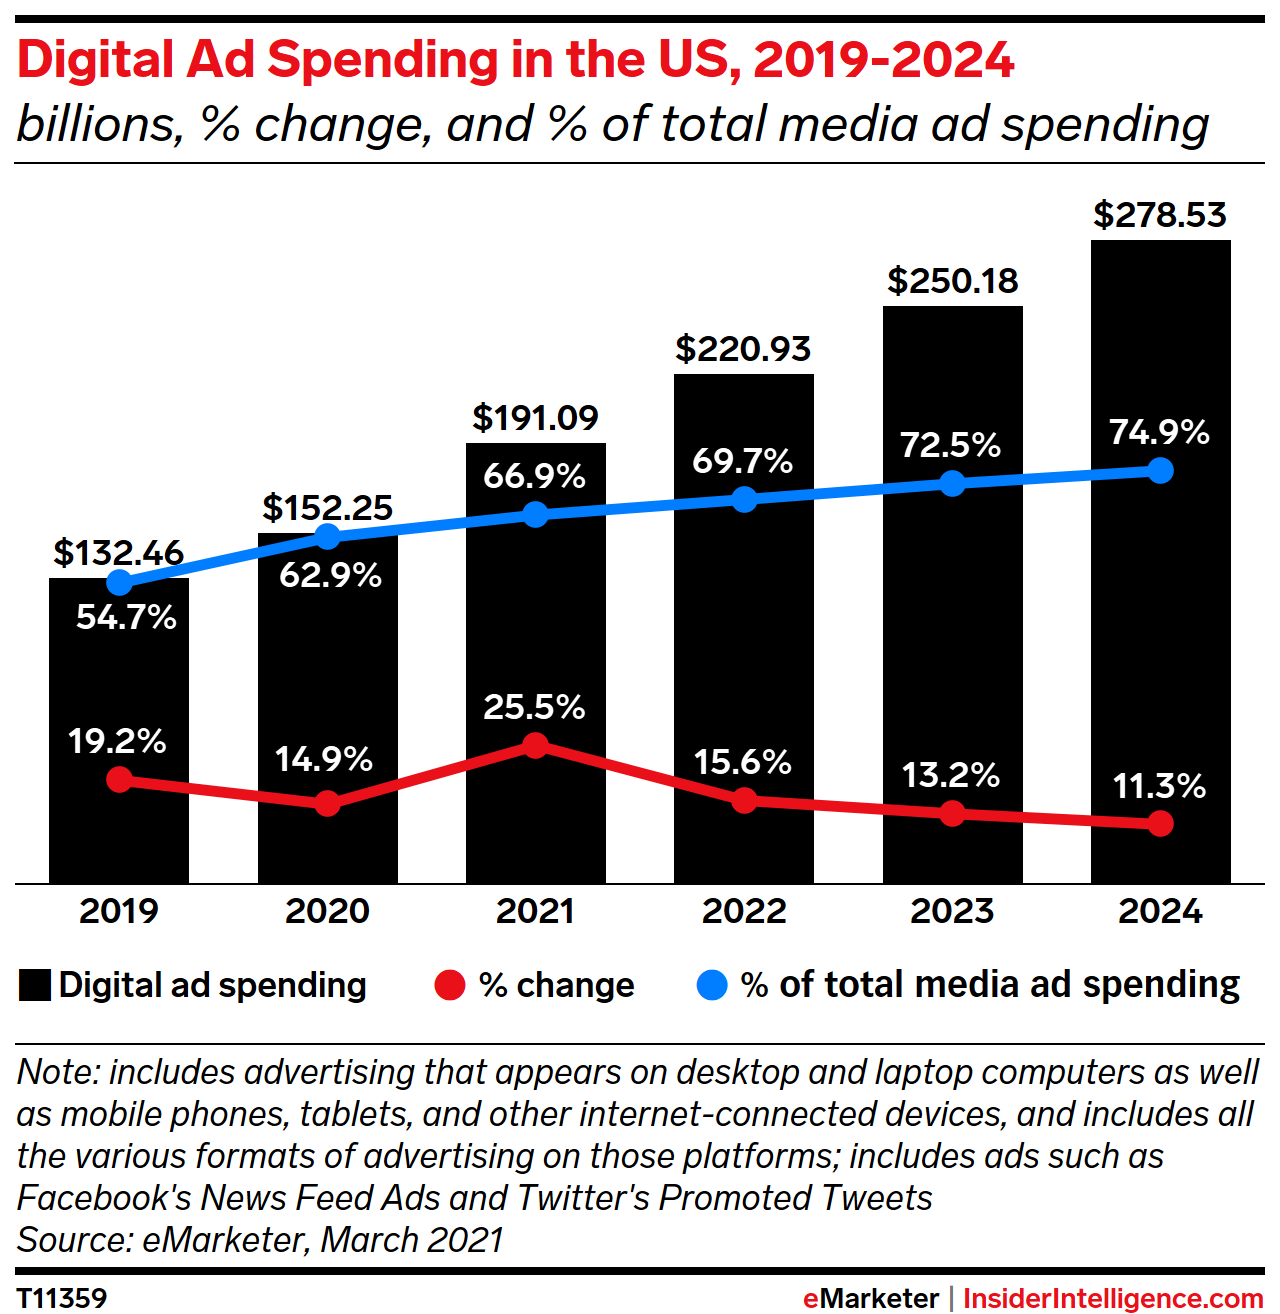 Digital Ad Spending in the US, 2019-2024 (billions, % change, and % of total media ad spending)